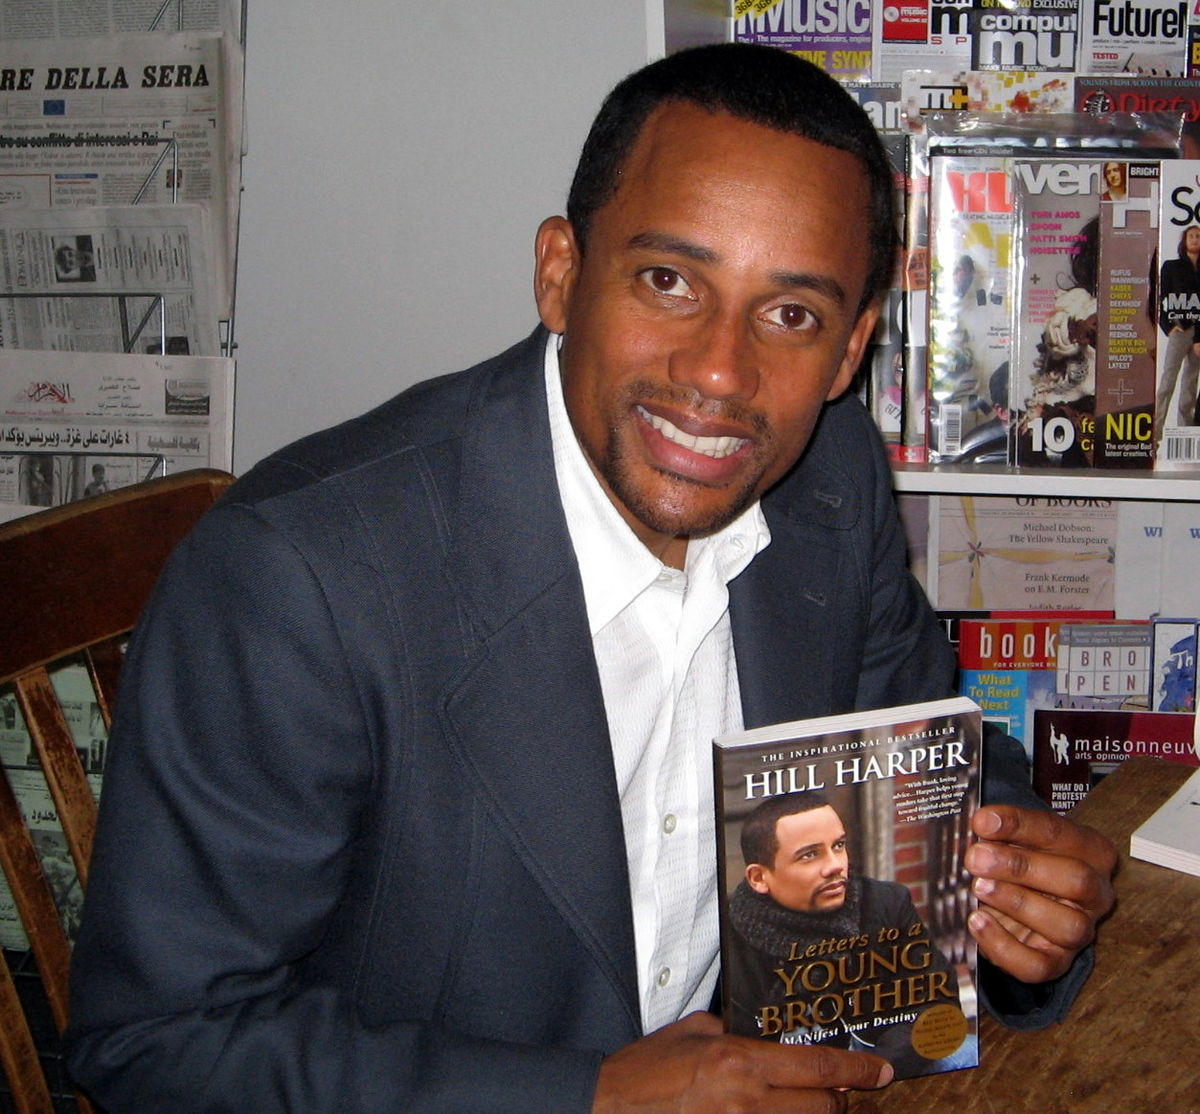 Hill harper natural products